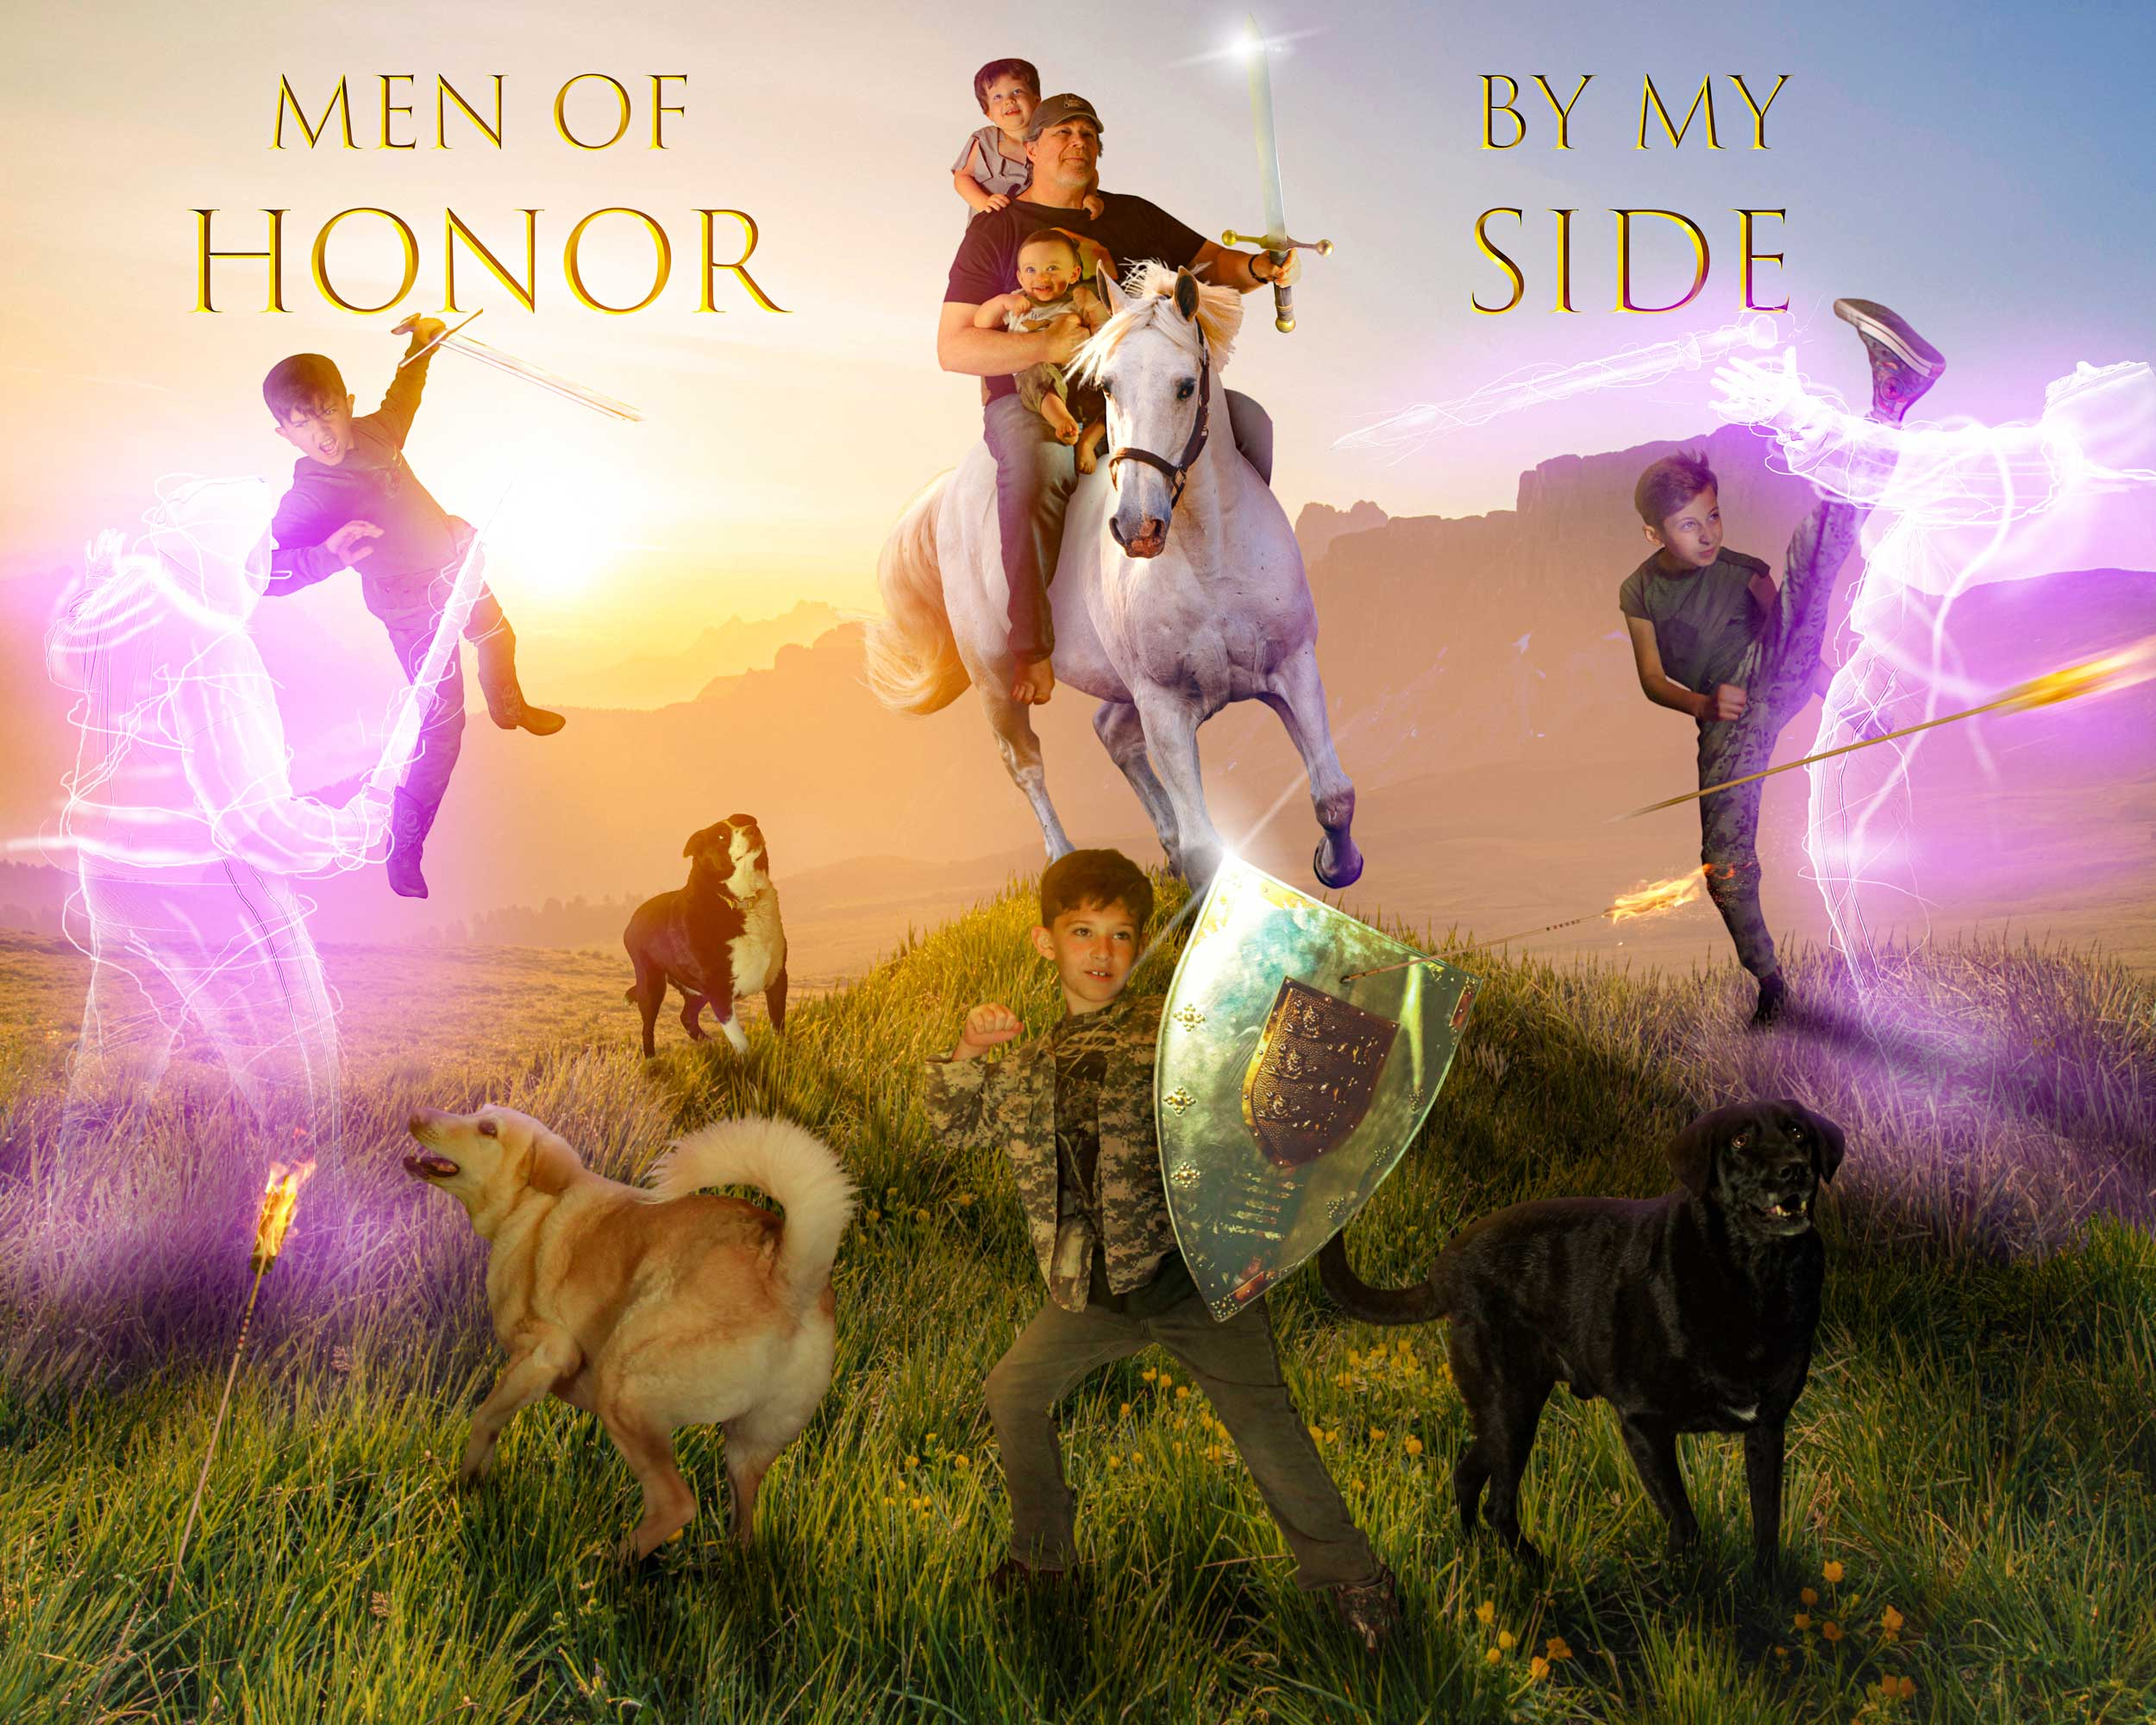 A man, his 5 young grandchildren, and 3 valiant dogs conquer a field of battle together.